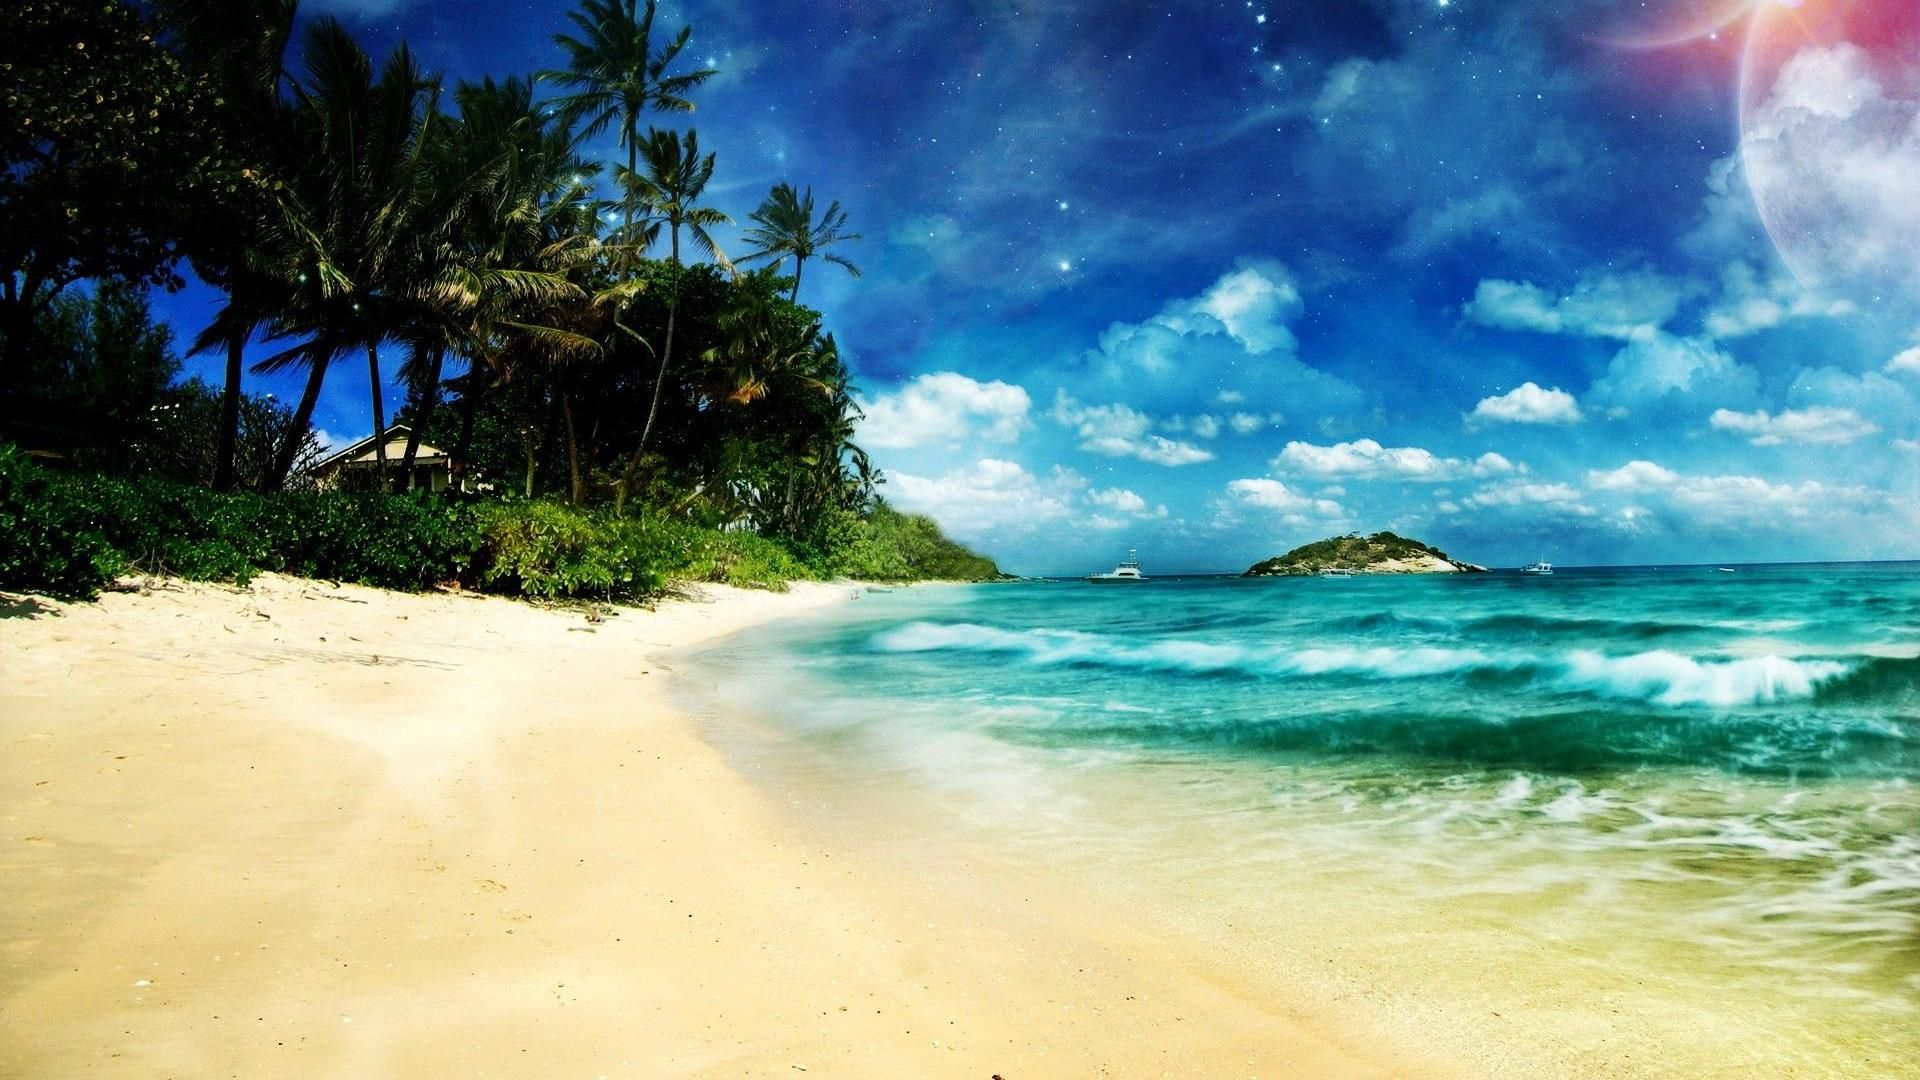 beach wallpaper 3f3 ylook lay nature beach best nature rh pinterest com